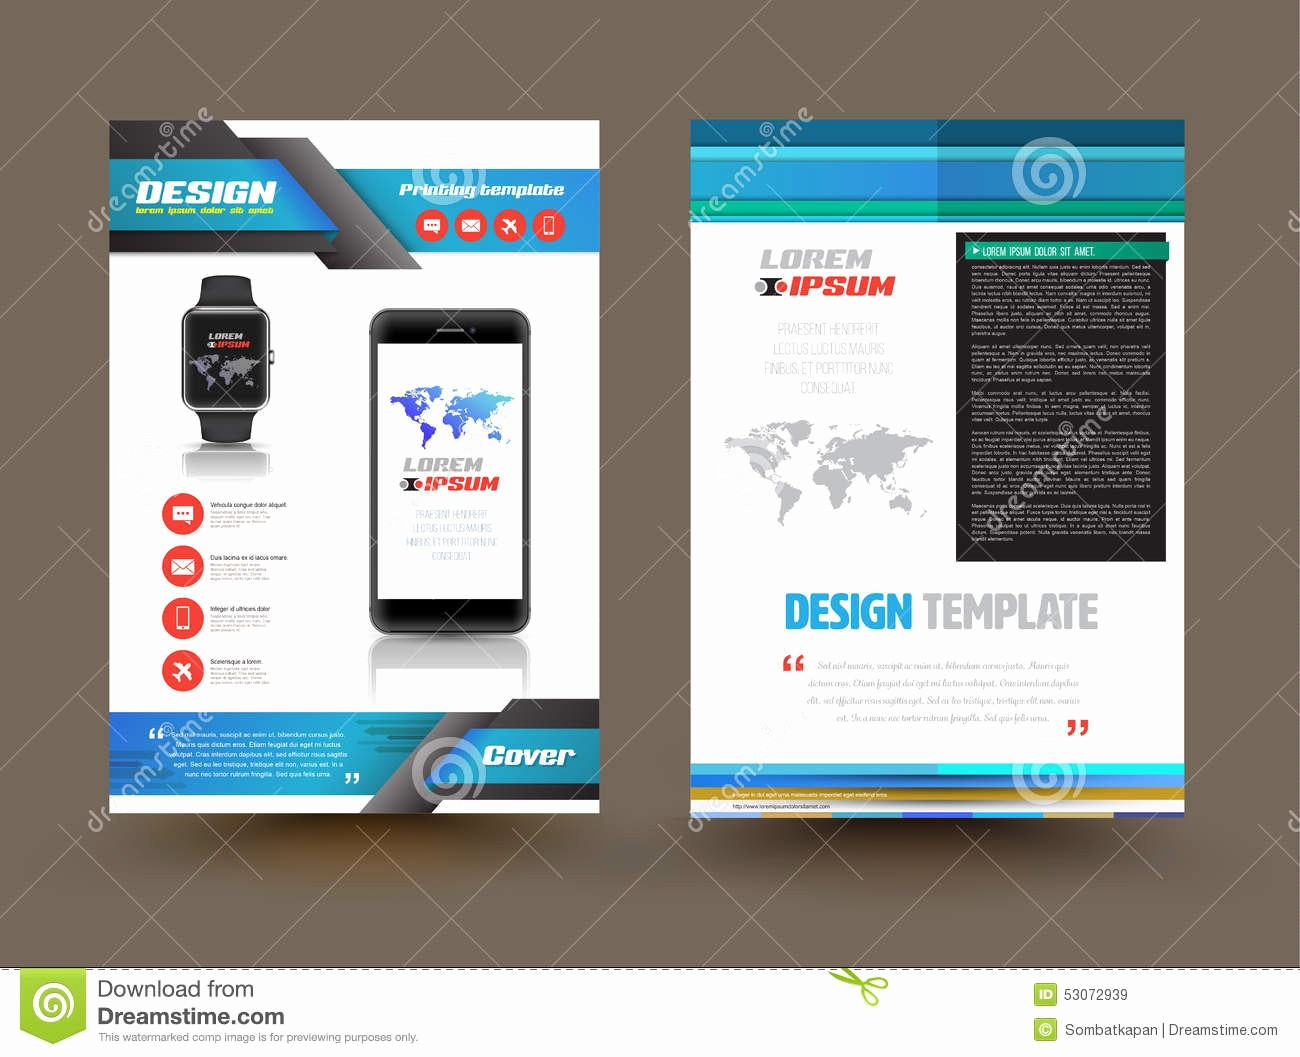 Product Catalog Template Free Download Elegant Vector Brochure Template Design for Technology Product